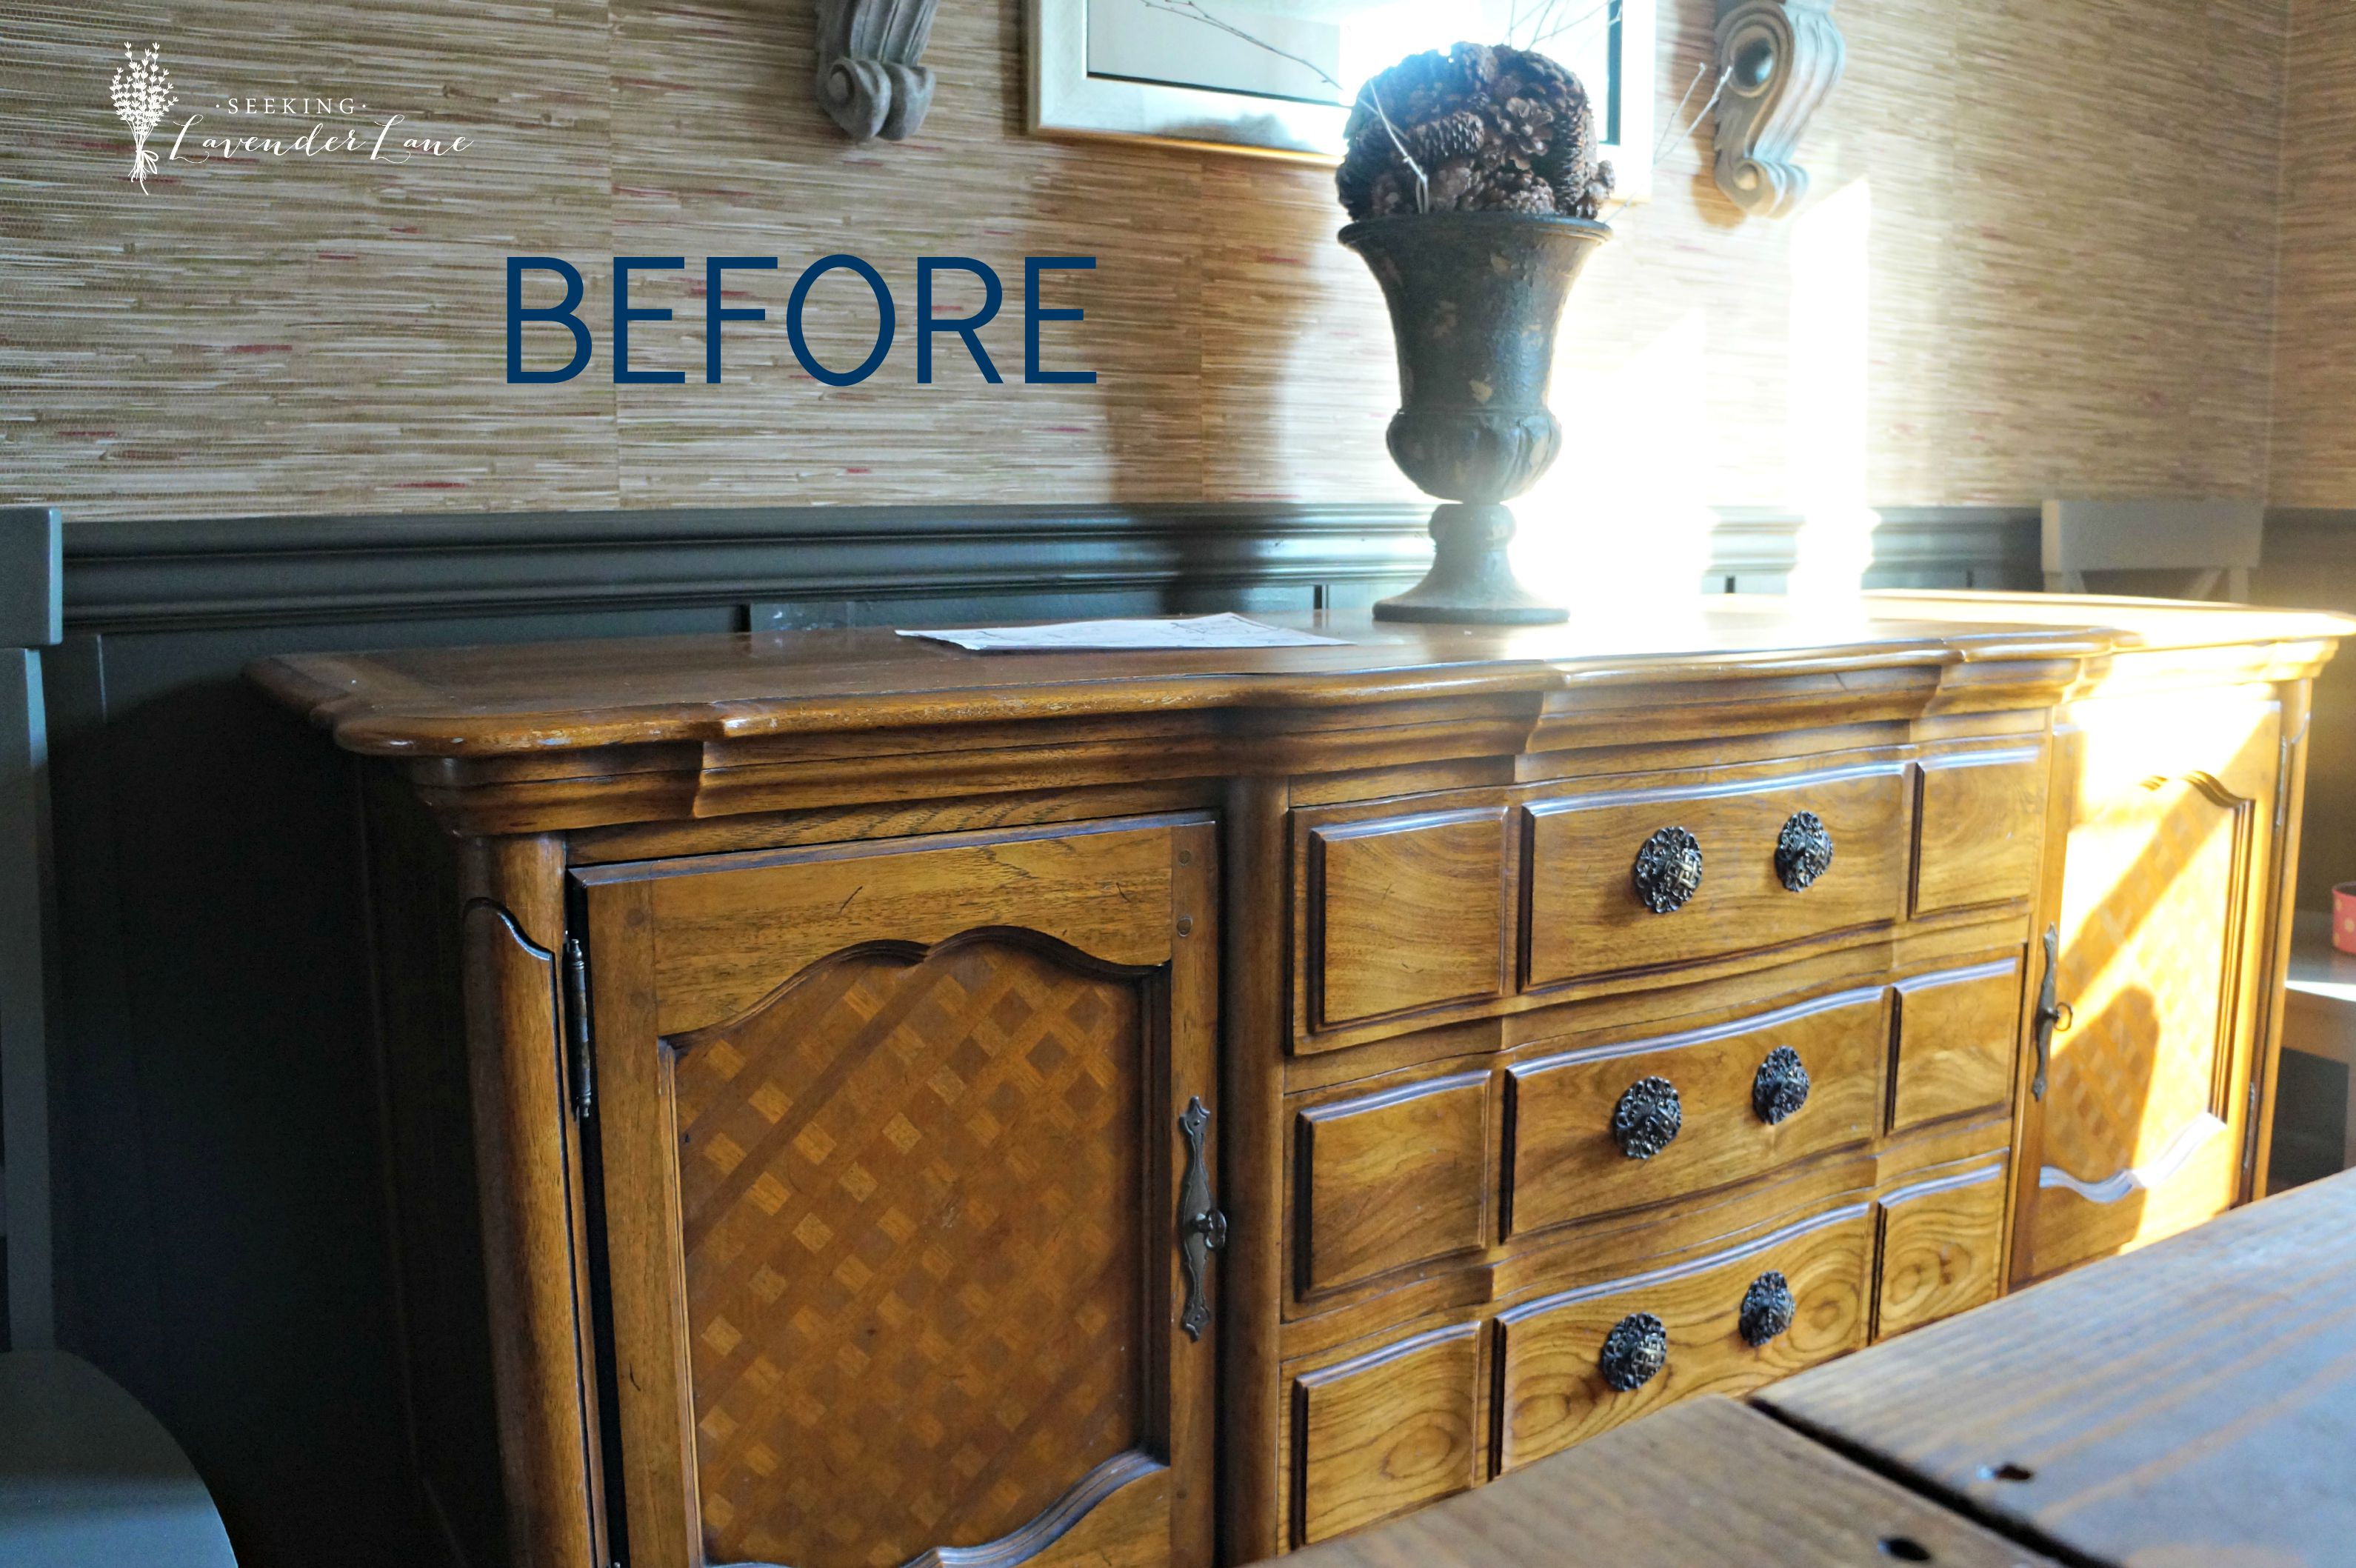 I Love French Provincial But Was Not Quite Sure This Is What I Wanted In  Here. Since I Did Not Have Much ...